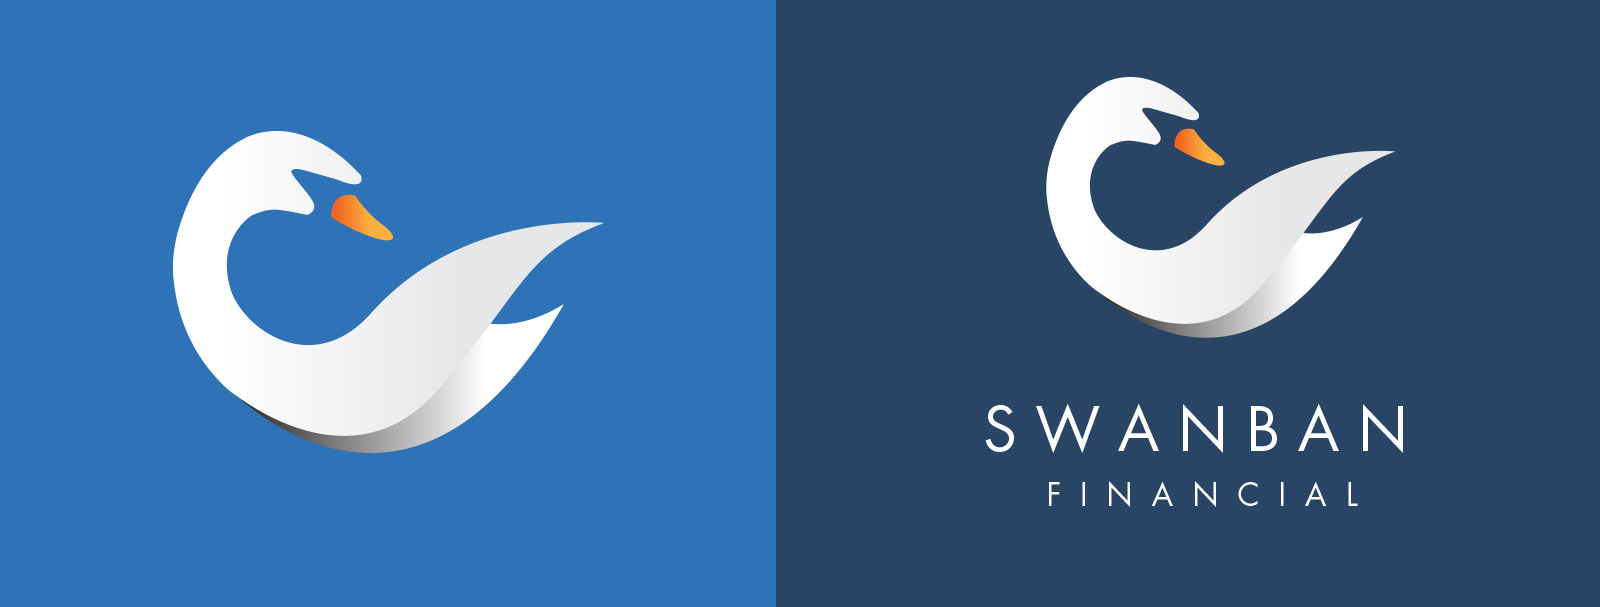 Swanban Financial Logo Graphicsbyte Creative Media